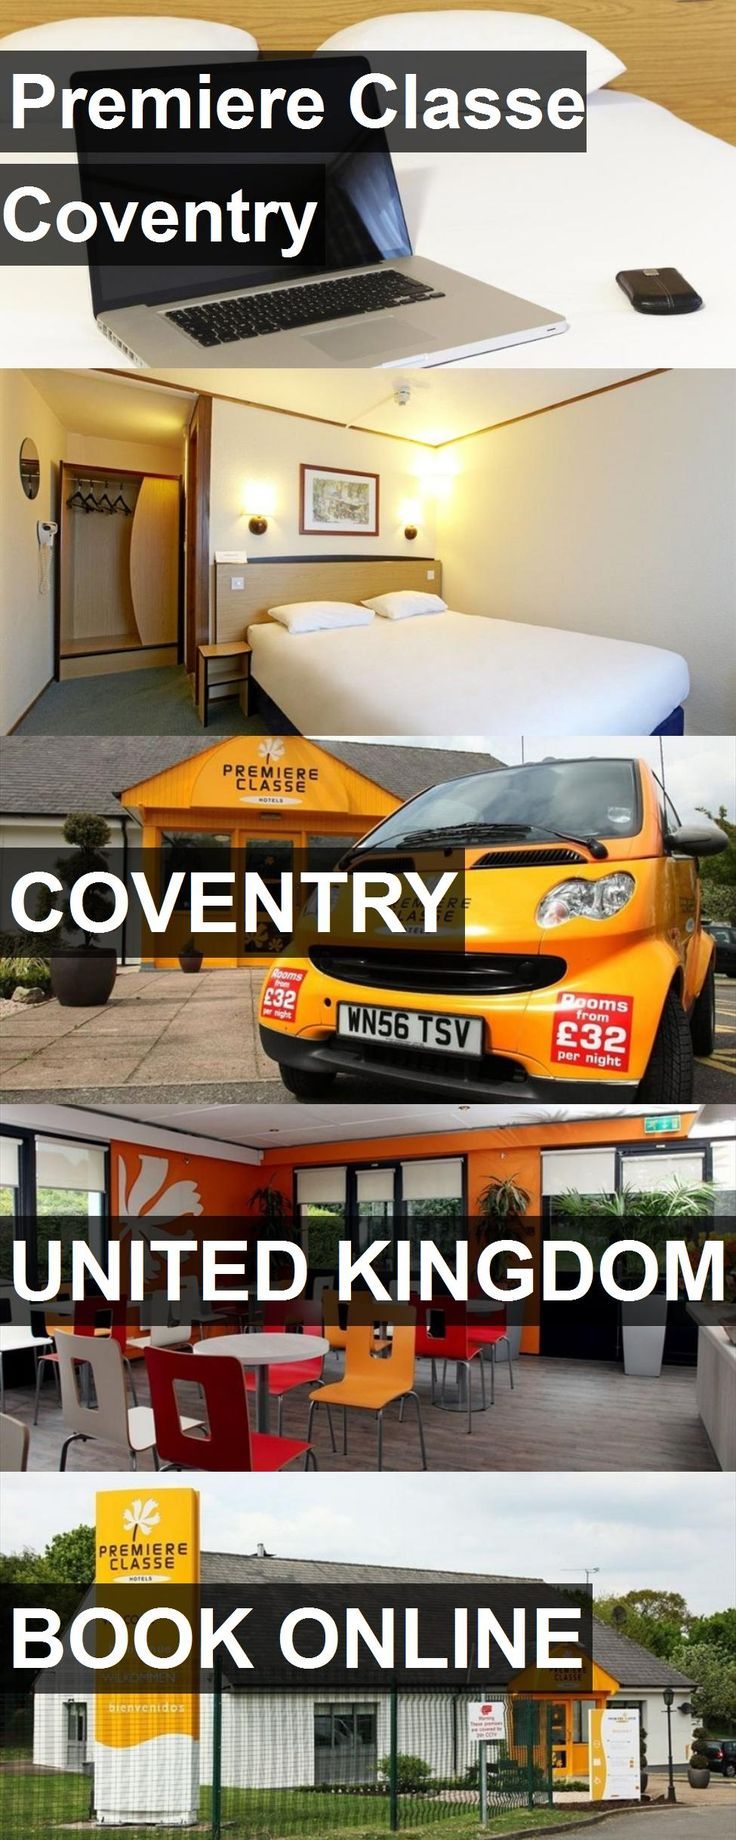 Hotel Premiere Classe Coventry in Coventry, United Kingdom. For more information, photos, reviews and best prices please follow the link. #UnitedKingdom #Coventry #travel #vacation #hotel